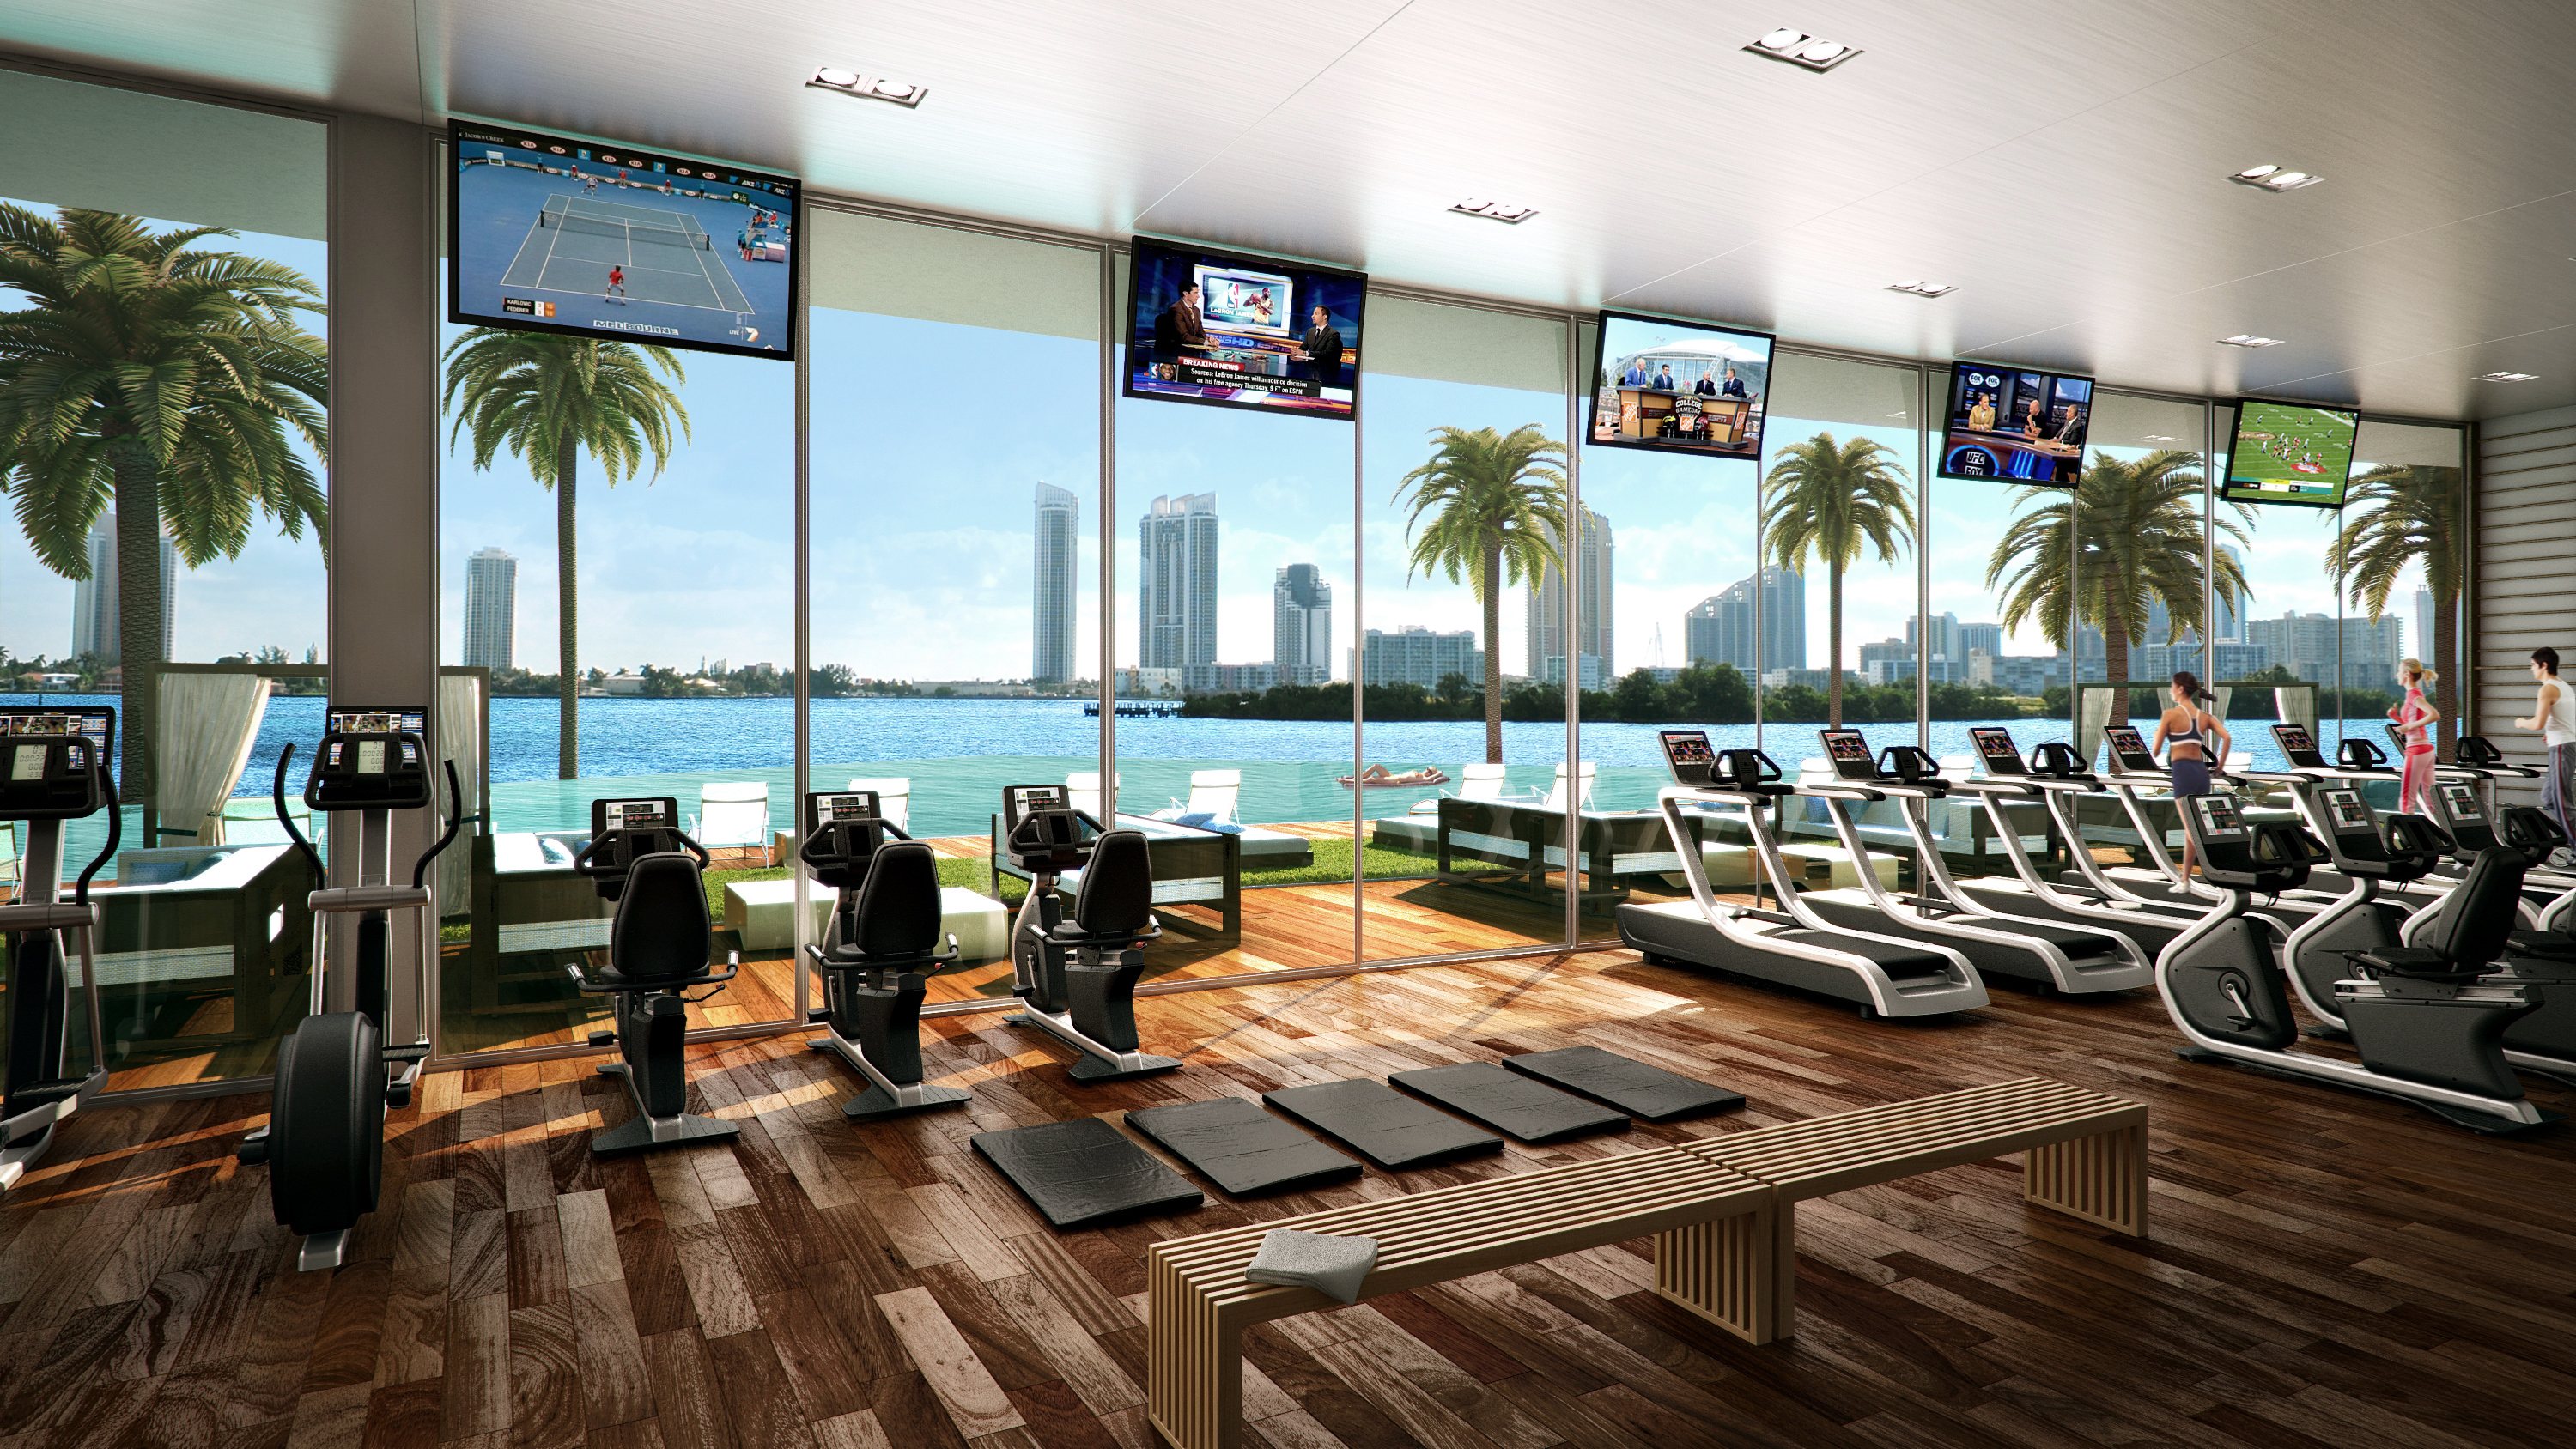 This Luxury Gym Costs $24,000 For A Membership